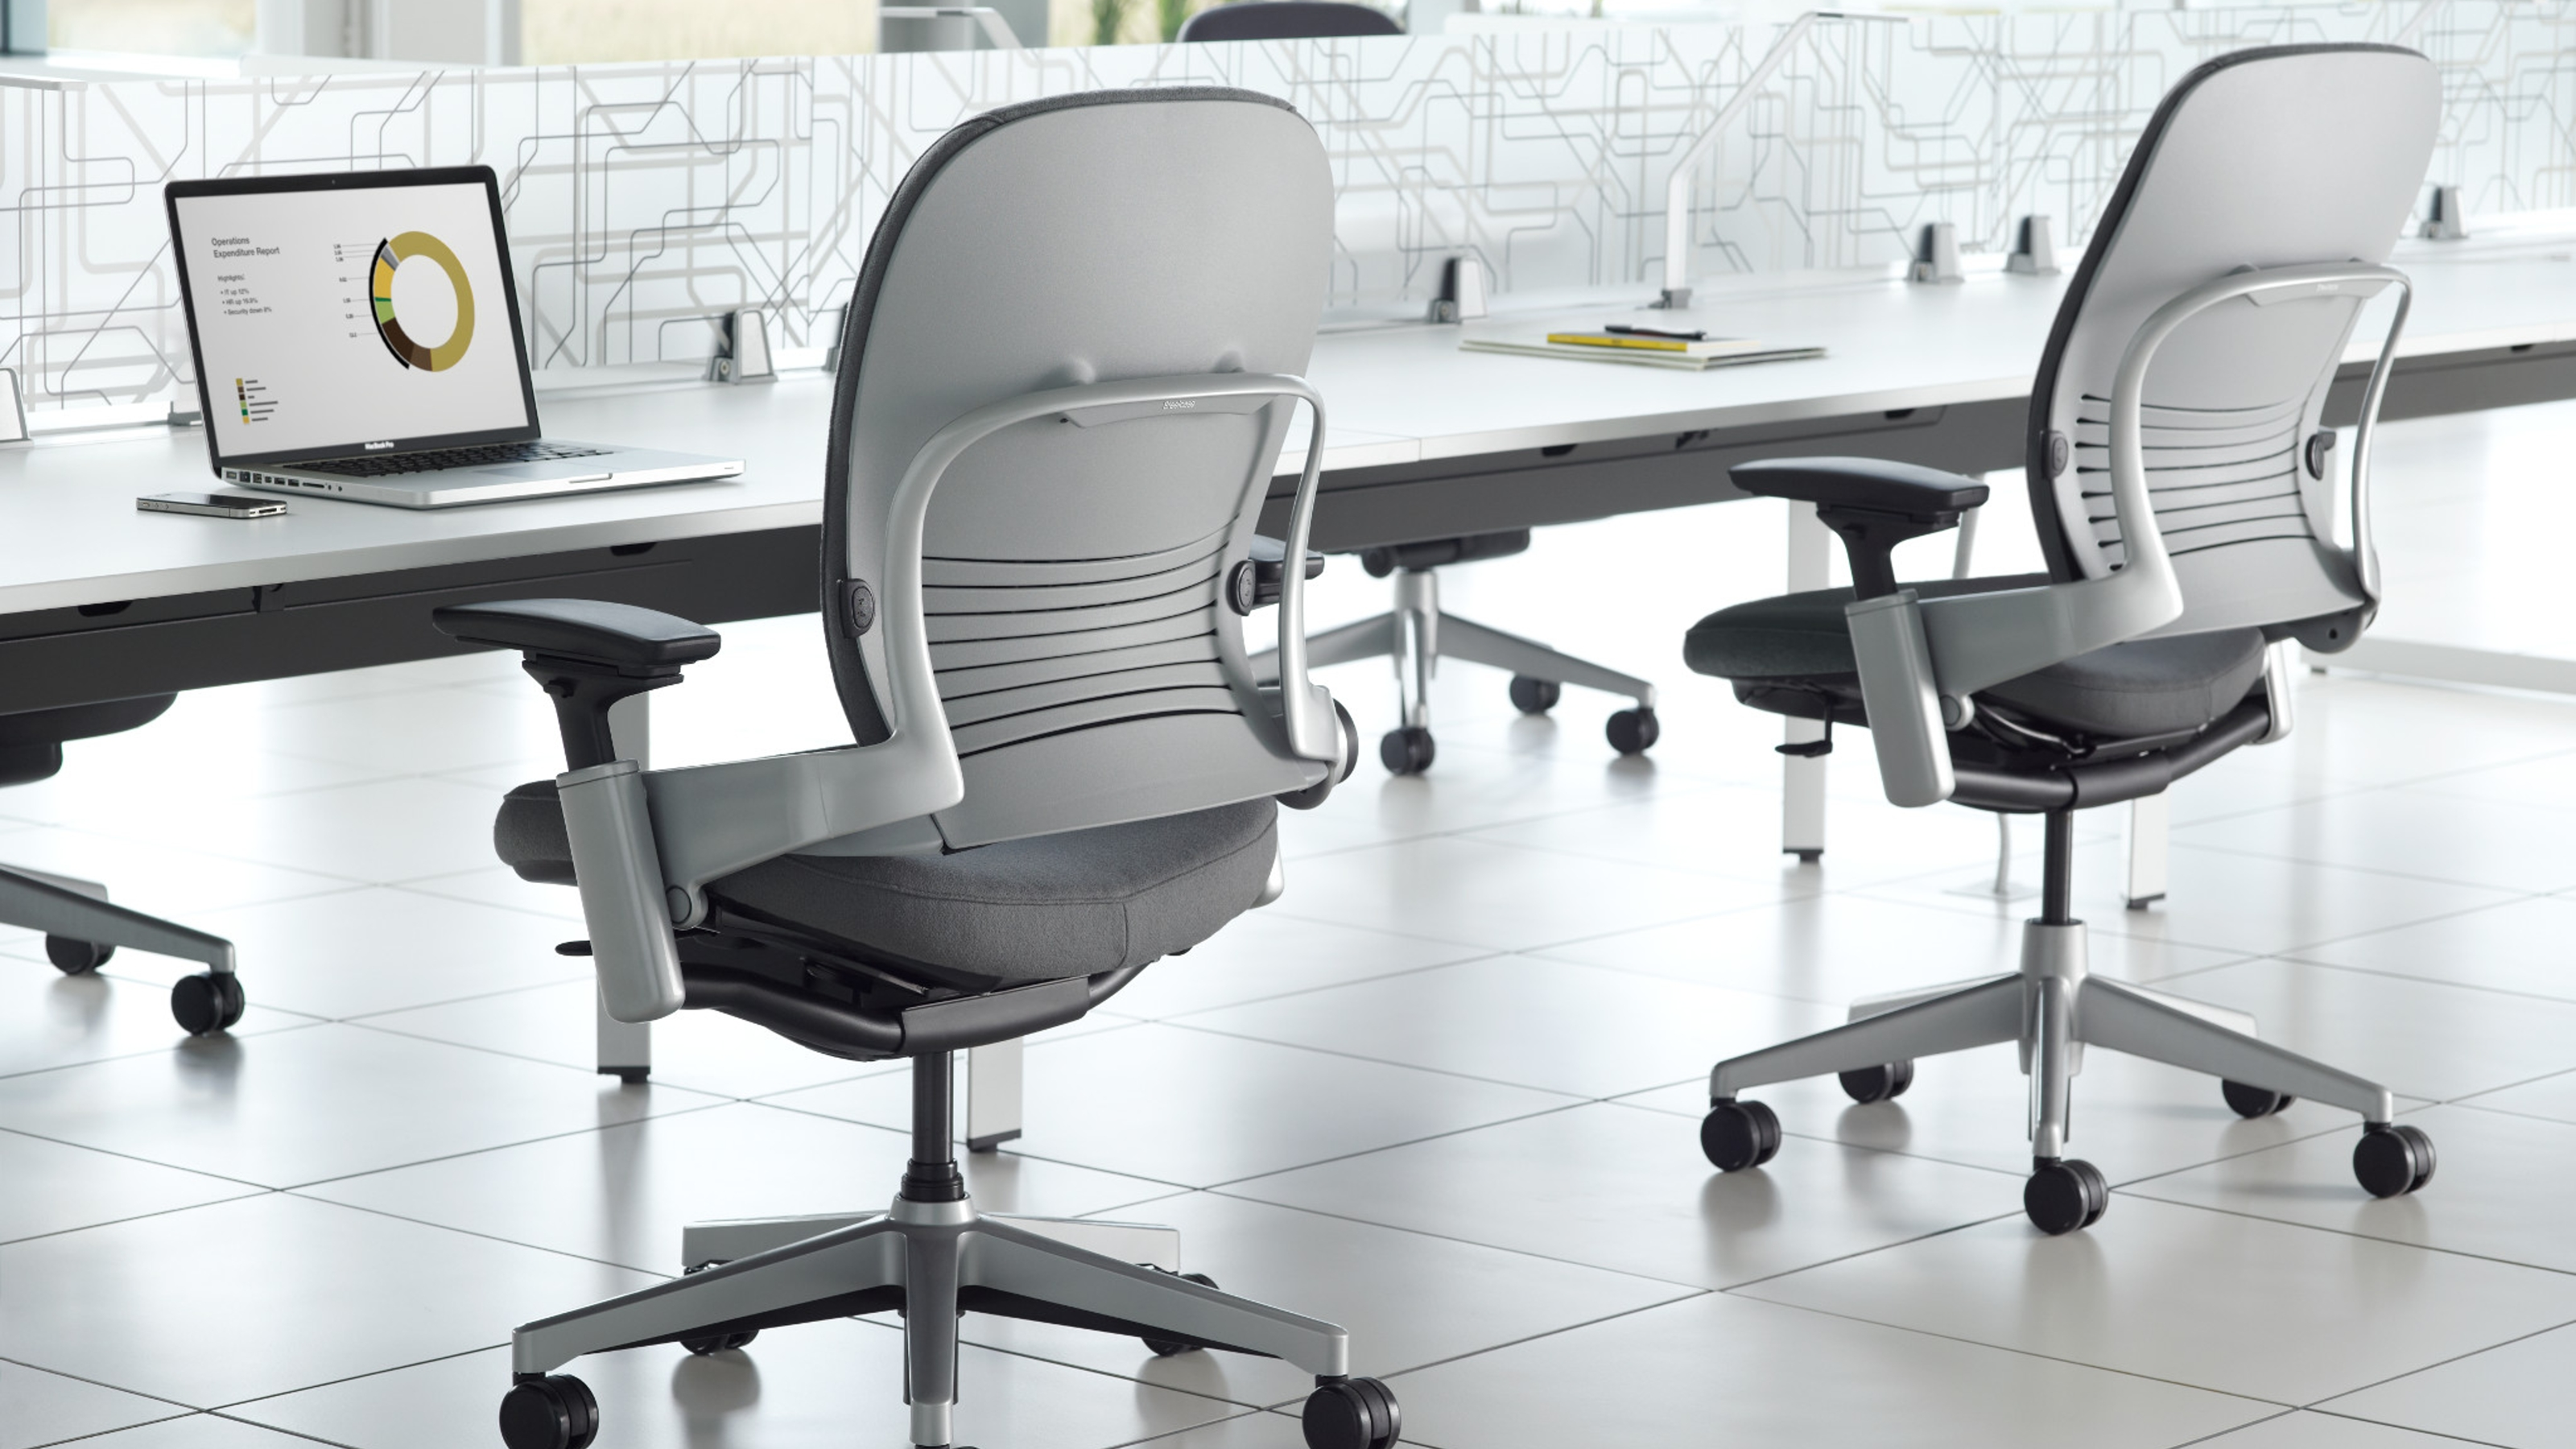 steelcase amia chair recall samsonite chairs for sale media